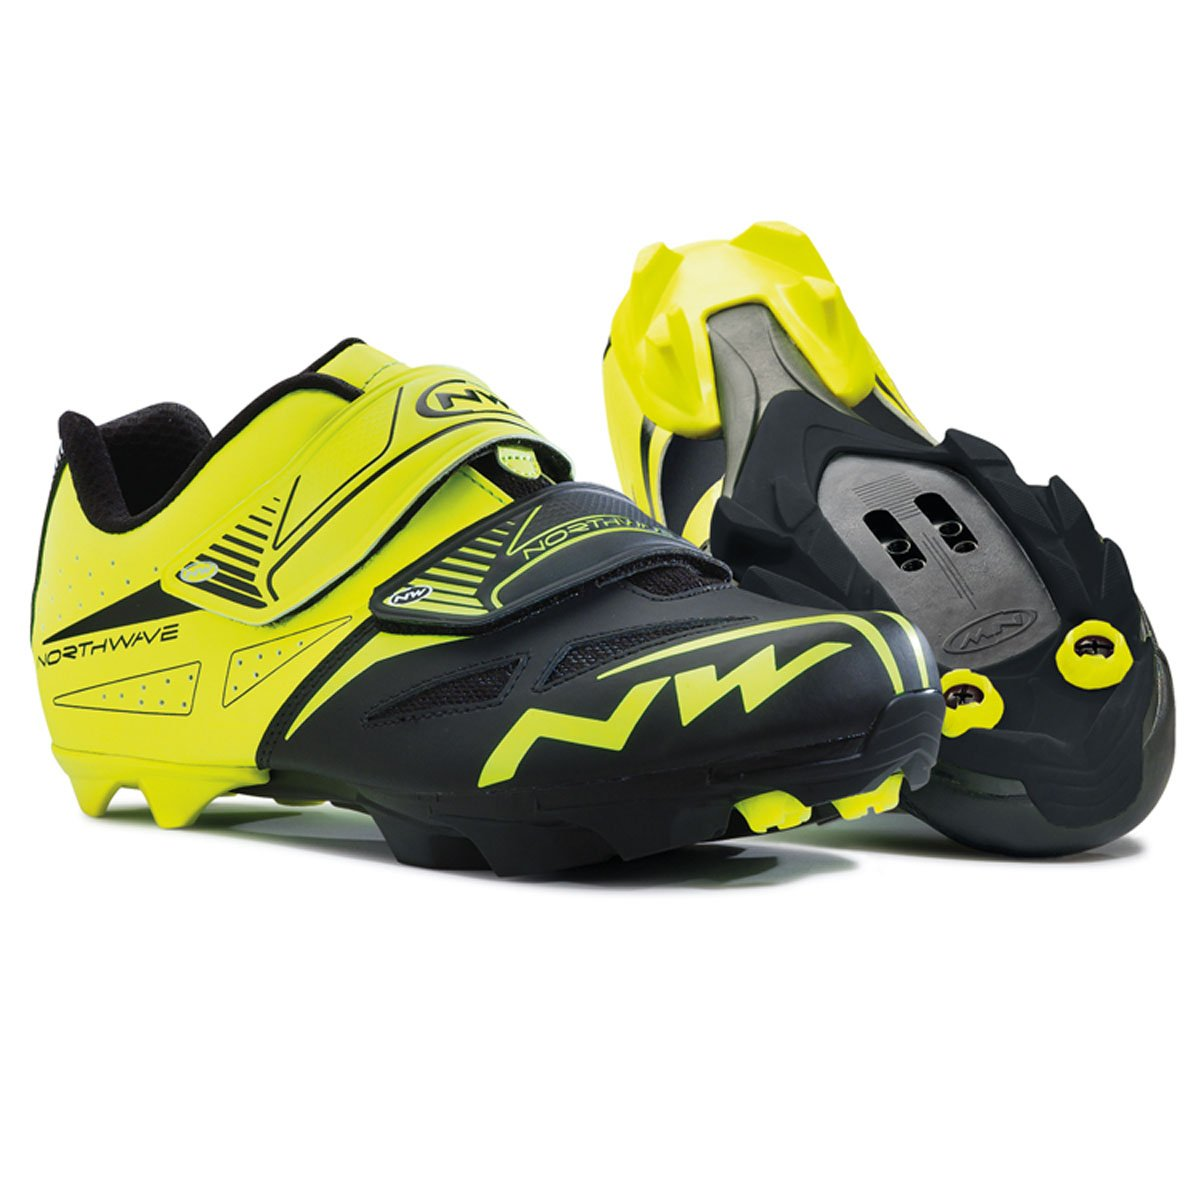 NORTHWAVE(ノースウェーブ) SPIKE EVO YELLOW FLUO/BLACK サイズ:43   B00LMYC6PK